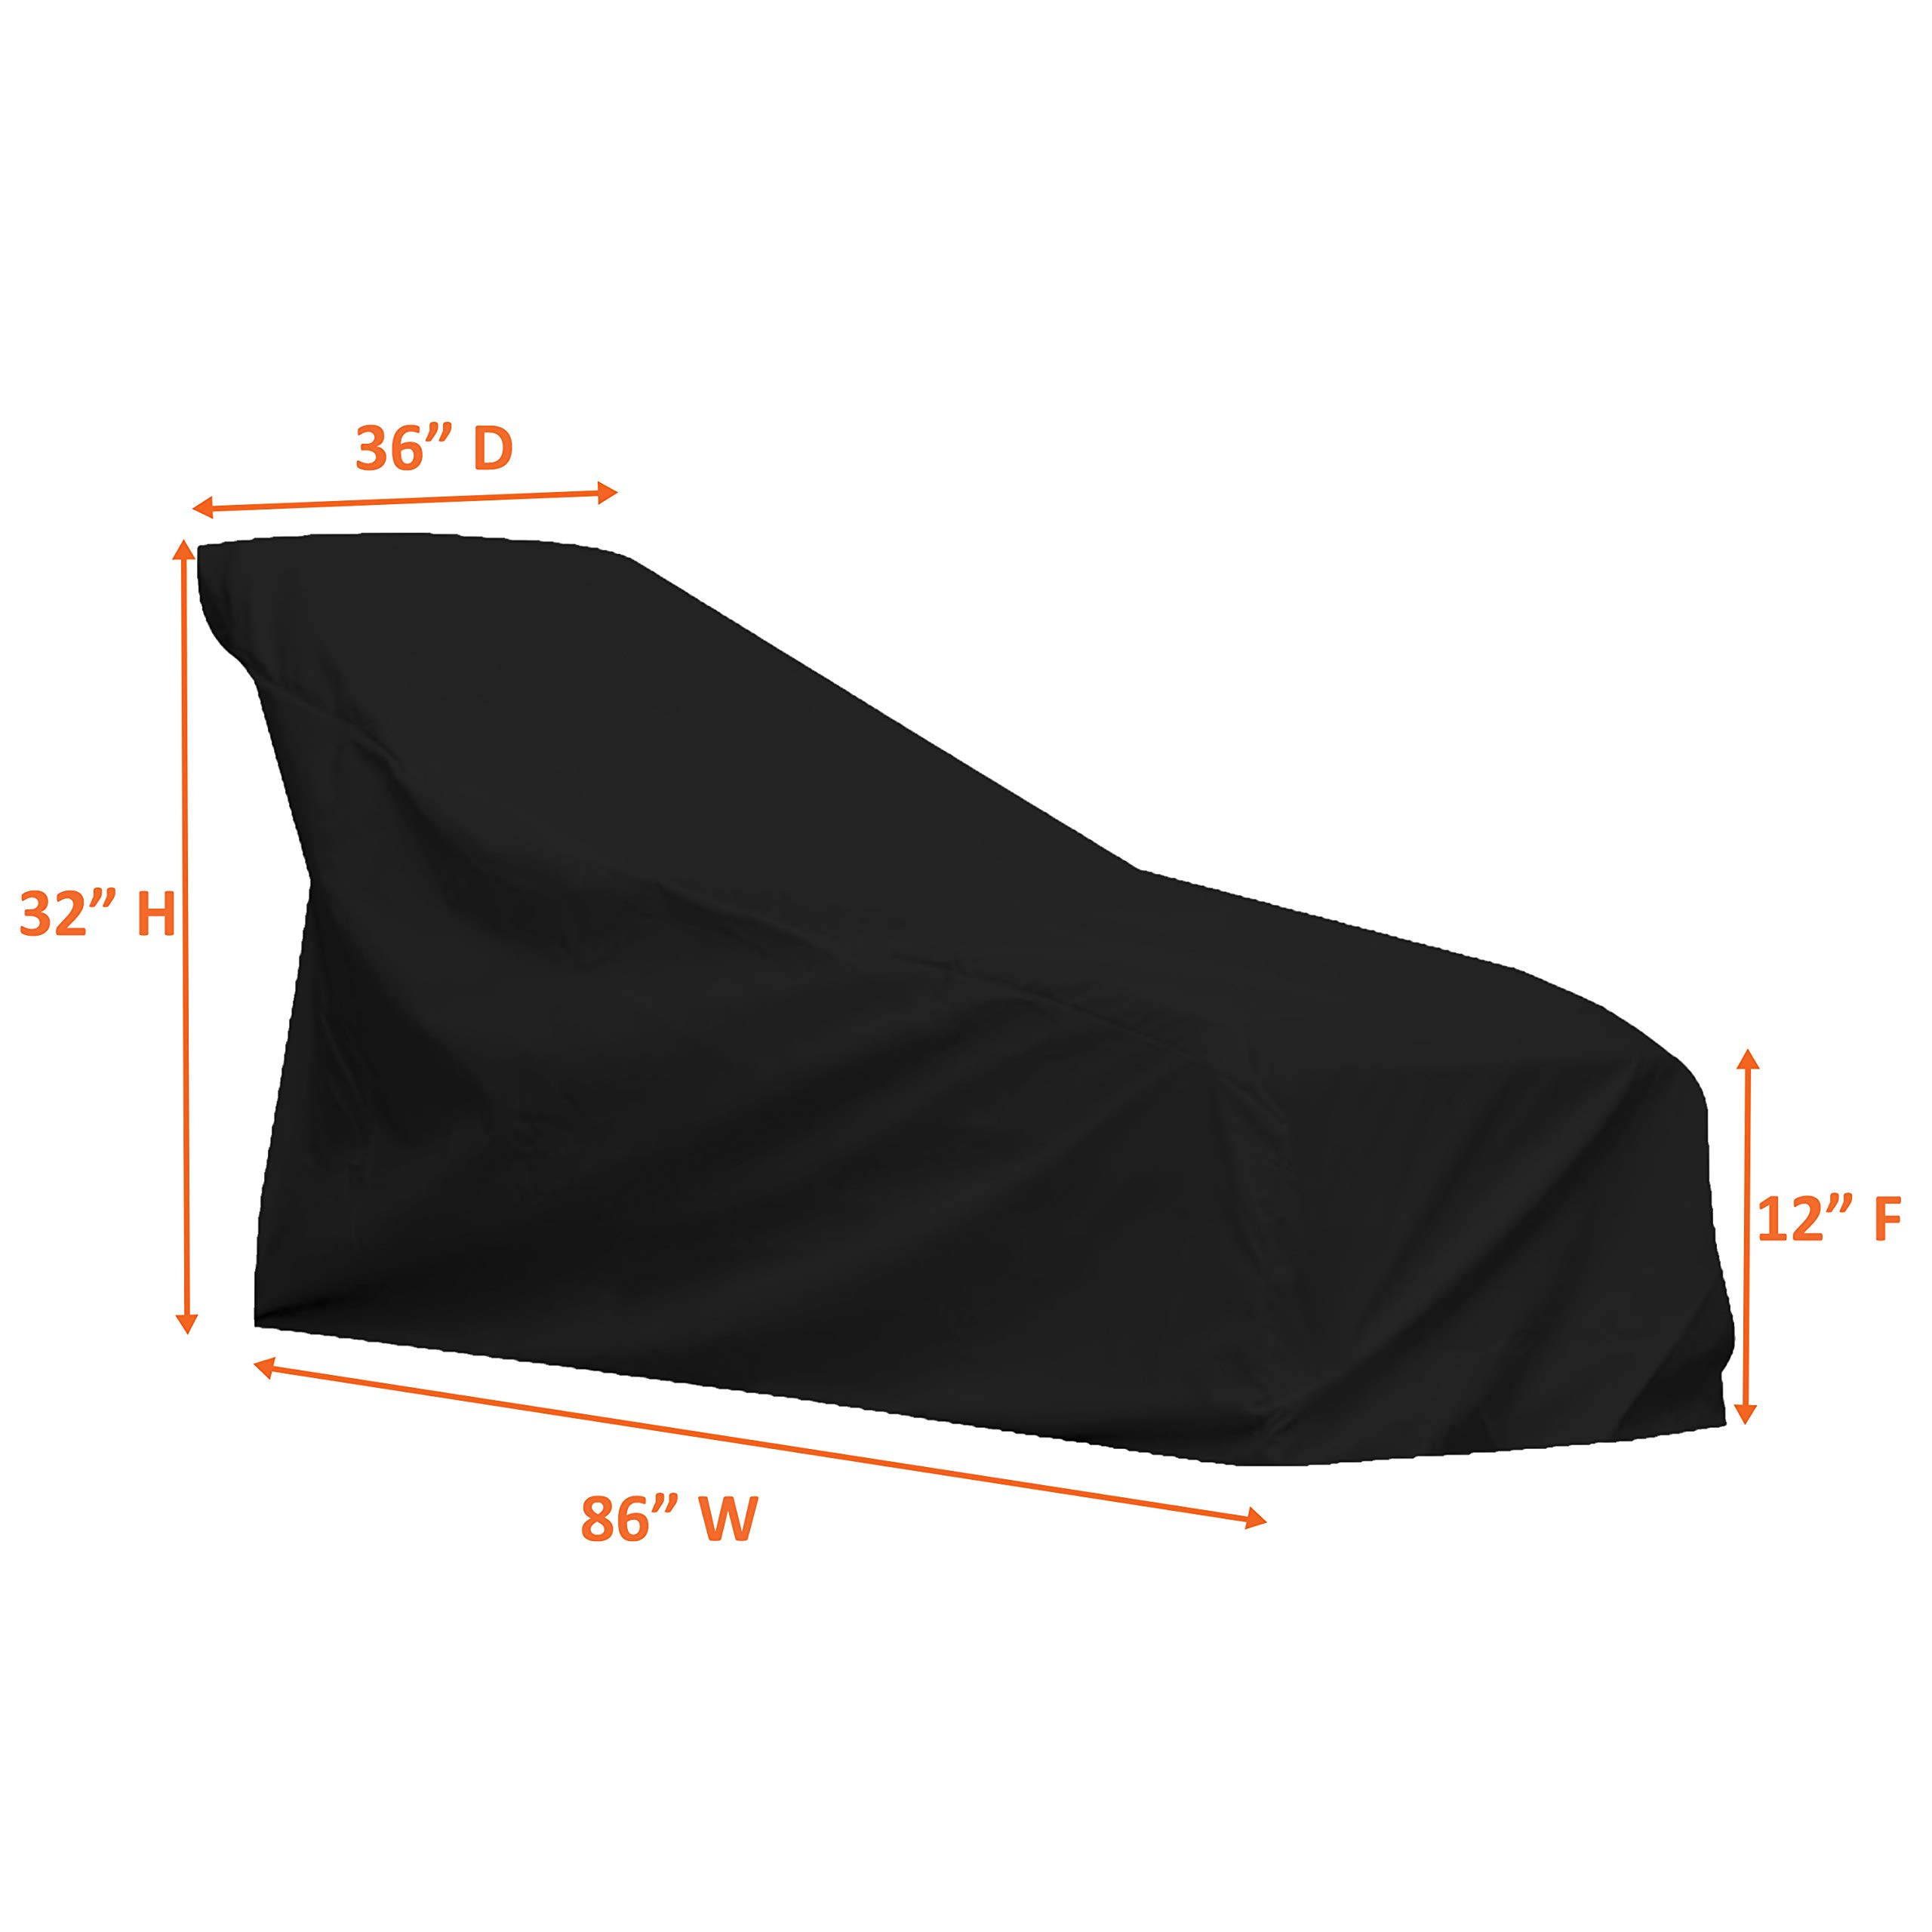 COVERS & ALL Chaise Lounge Cover 12 Oz Waterproof - 100% UV & Weather Resistant Outdoor Chaise Cover PVC Coated with Air Pockets and Drawstring for Snug Fit (86W x 36D x 32H, Black) by COVERS & ALL (Image #3)